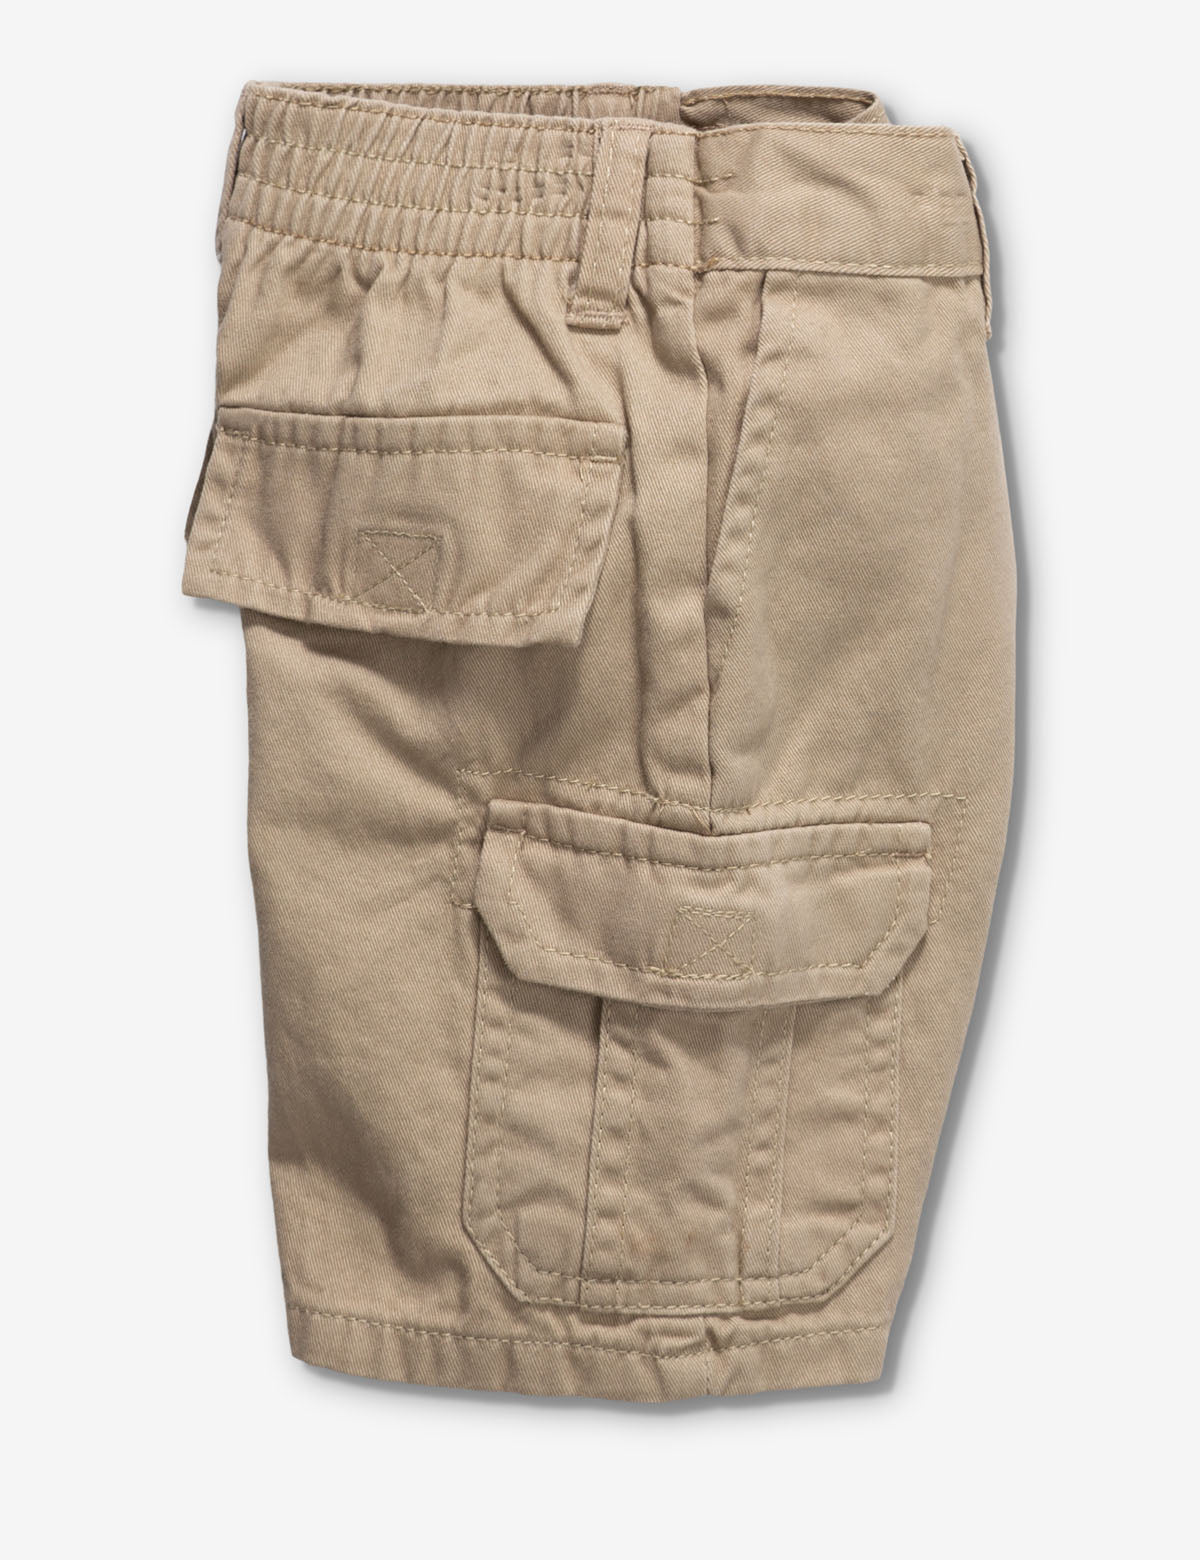 3T U.S Polo Association Toddler Cargo Jeans